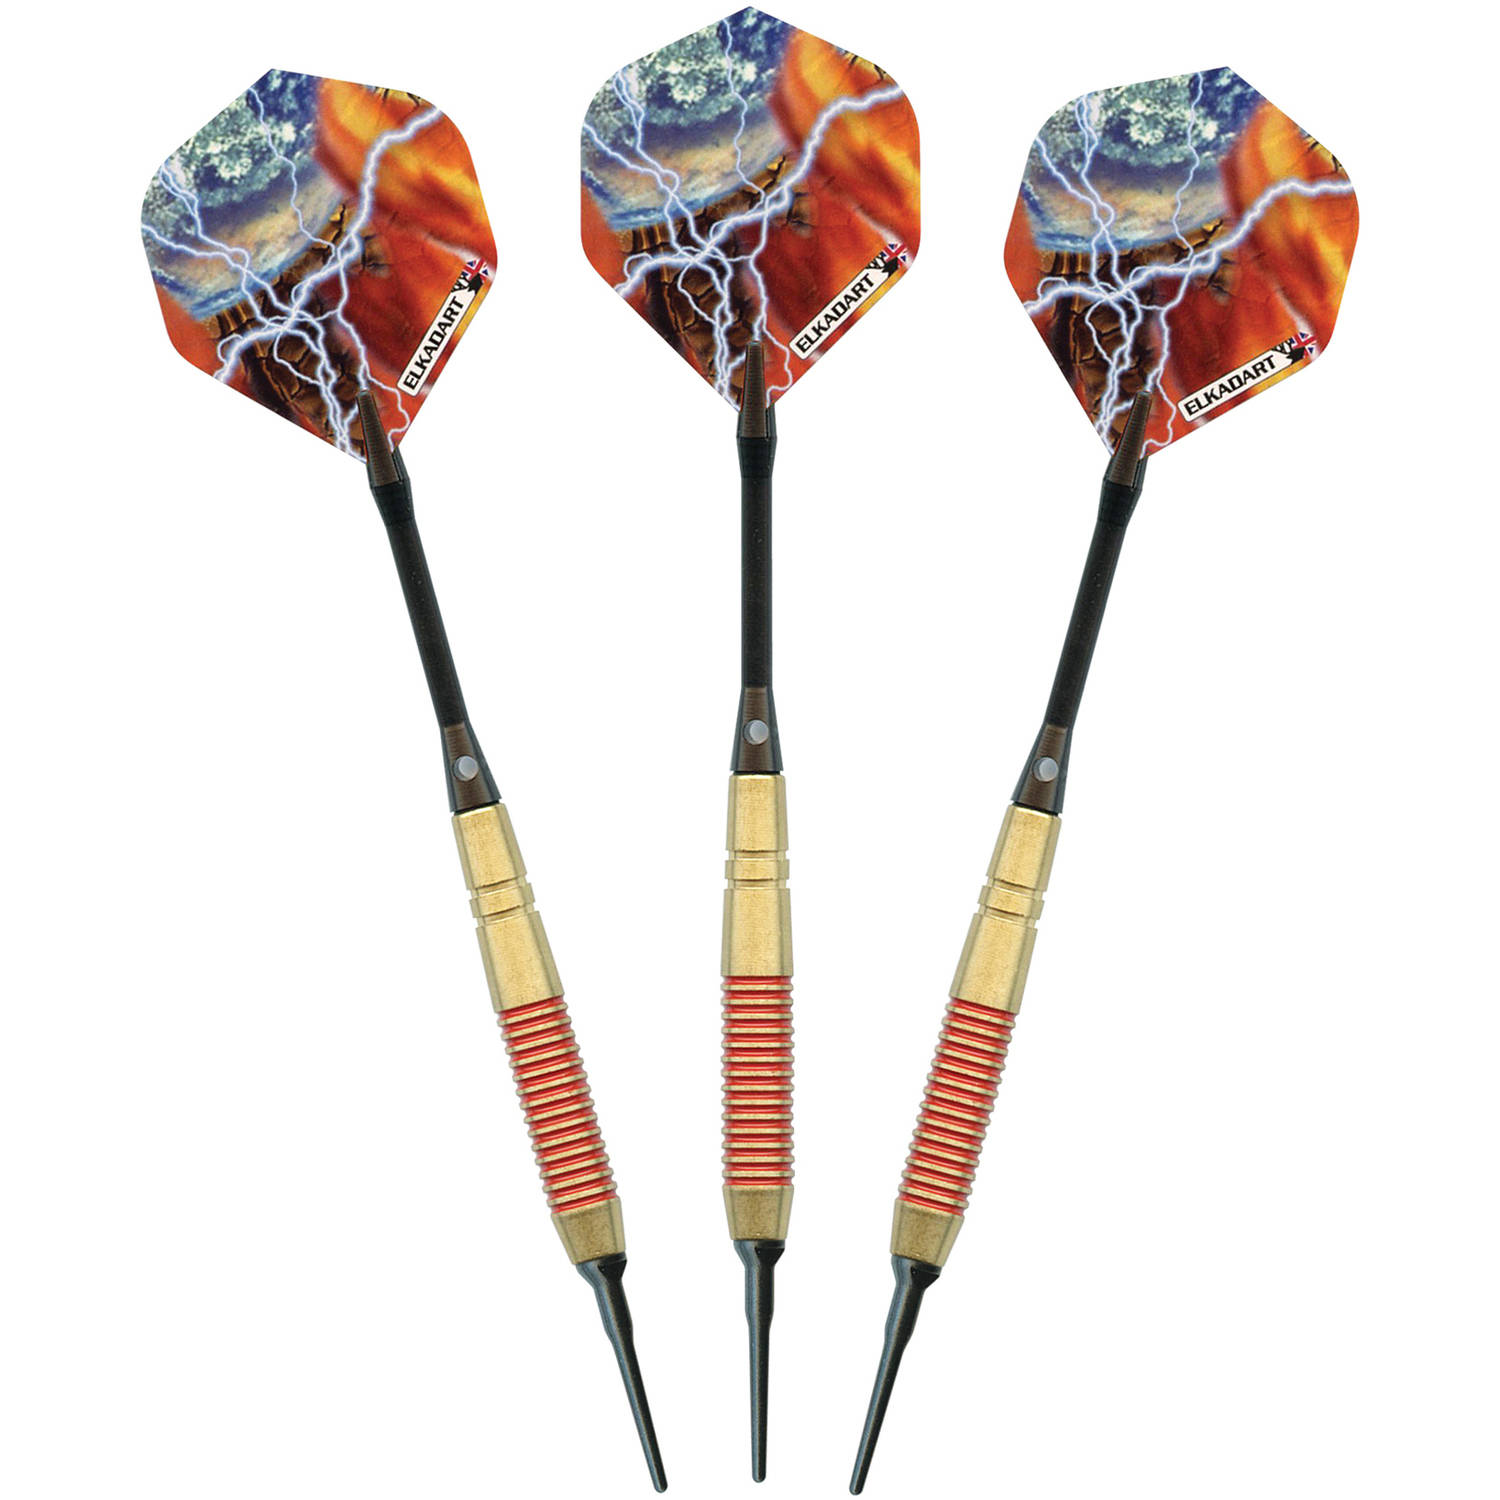 Elkadart Storm Soft Tip Darts, Red Rings, 16g